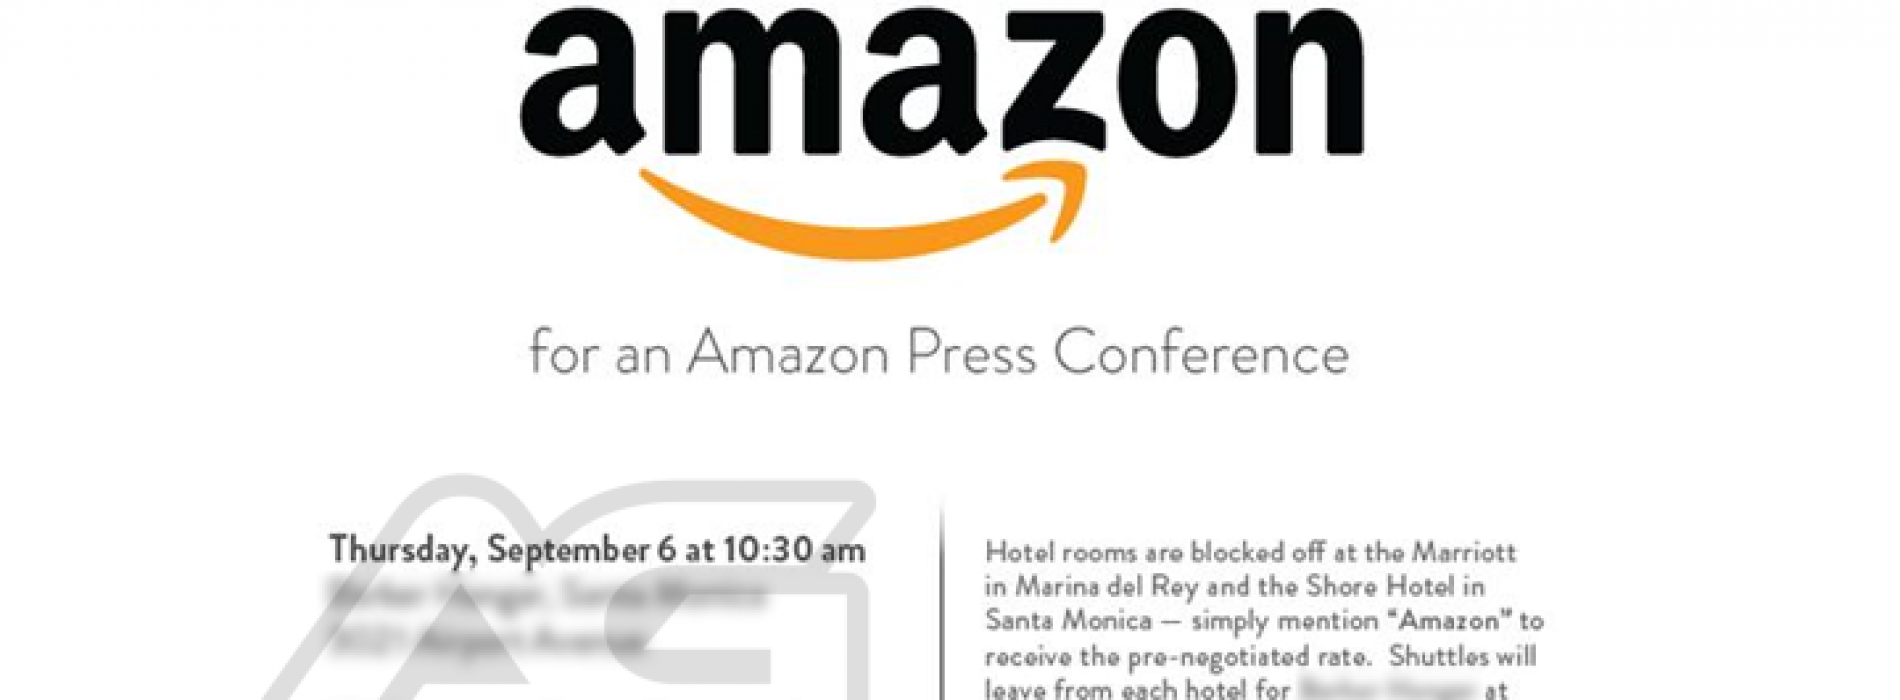 Will Amazon announce next Kindle Fire on September 6?